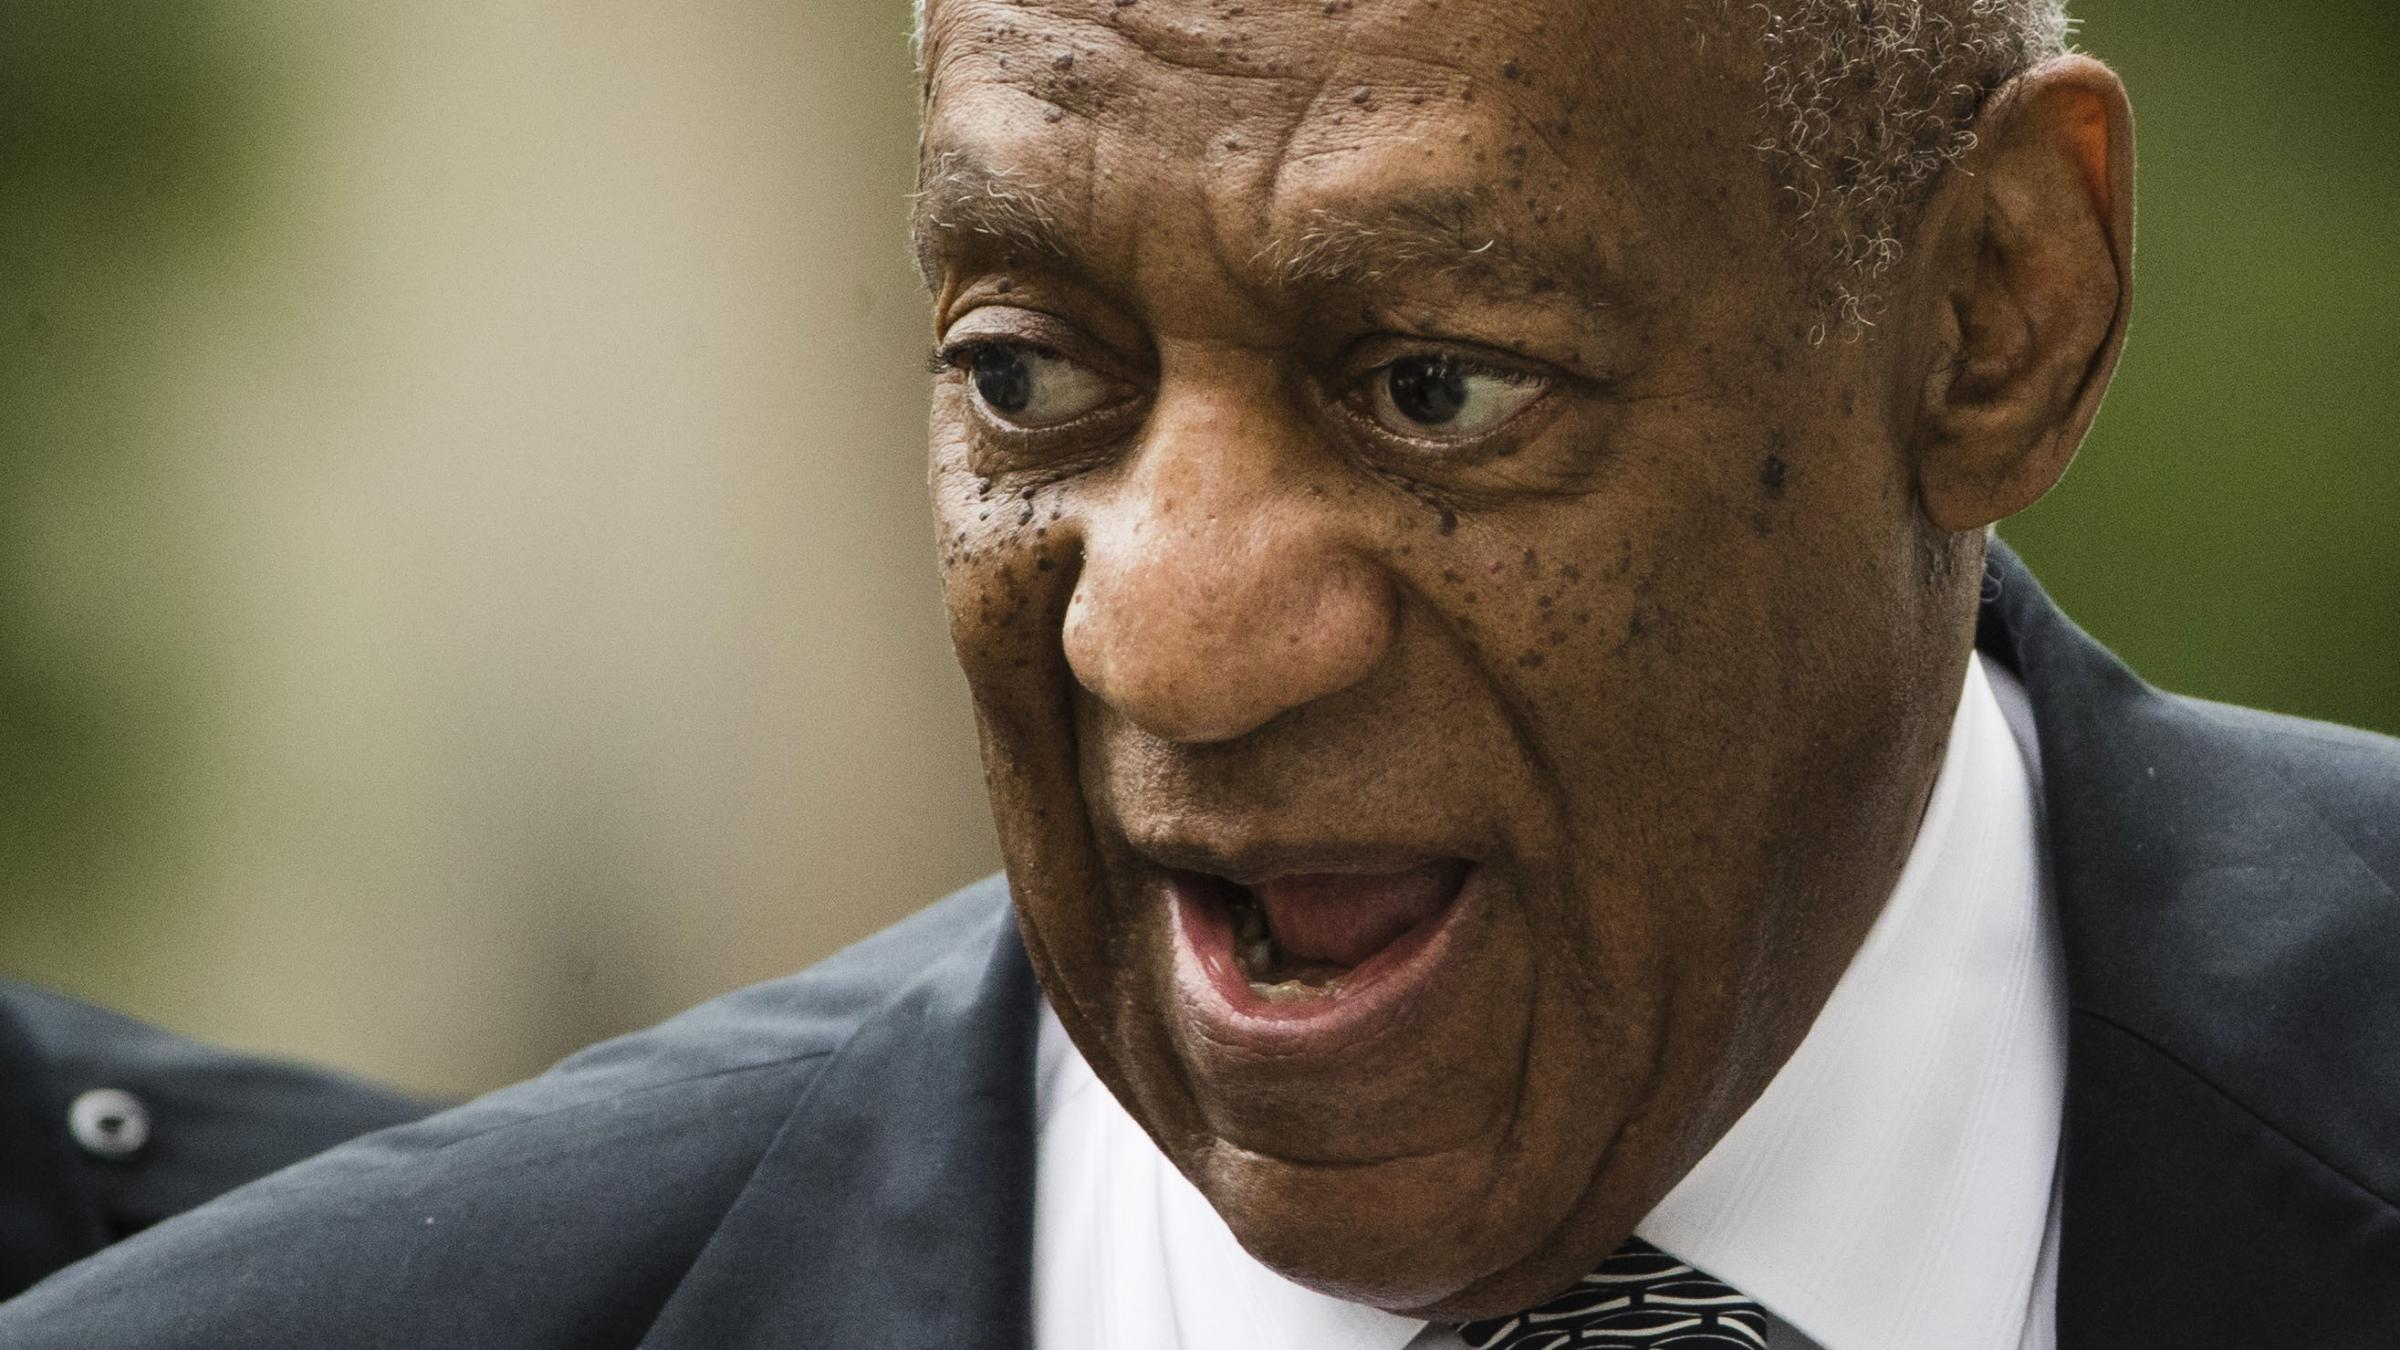 The Cosby and Yanez juries appear deadlocked. Now what?